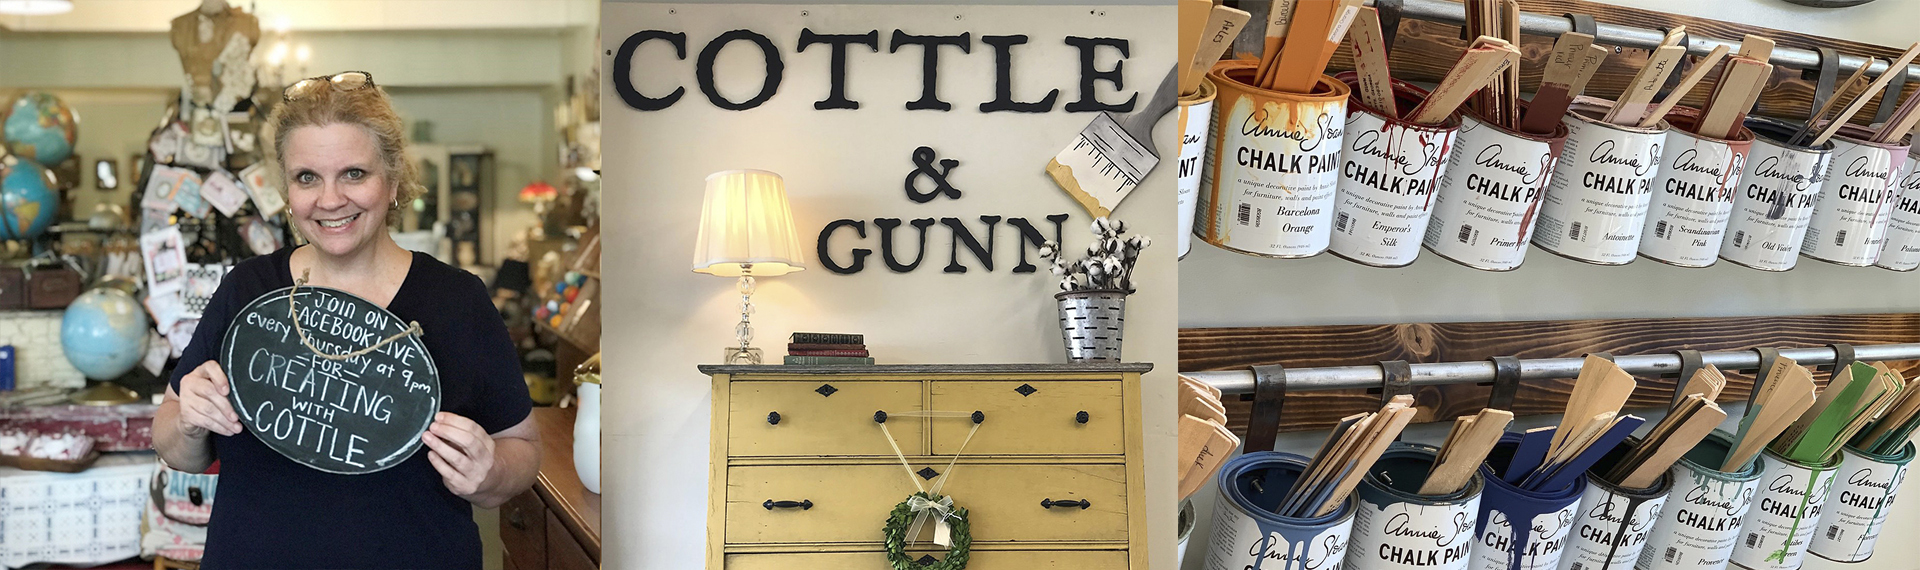 Three images showing Cottle & Gunn owner Deborah Cottle along with a sign of her store and buckets of paint